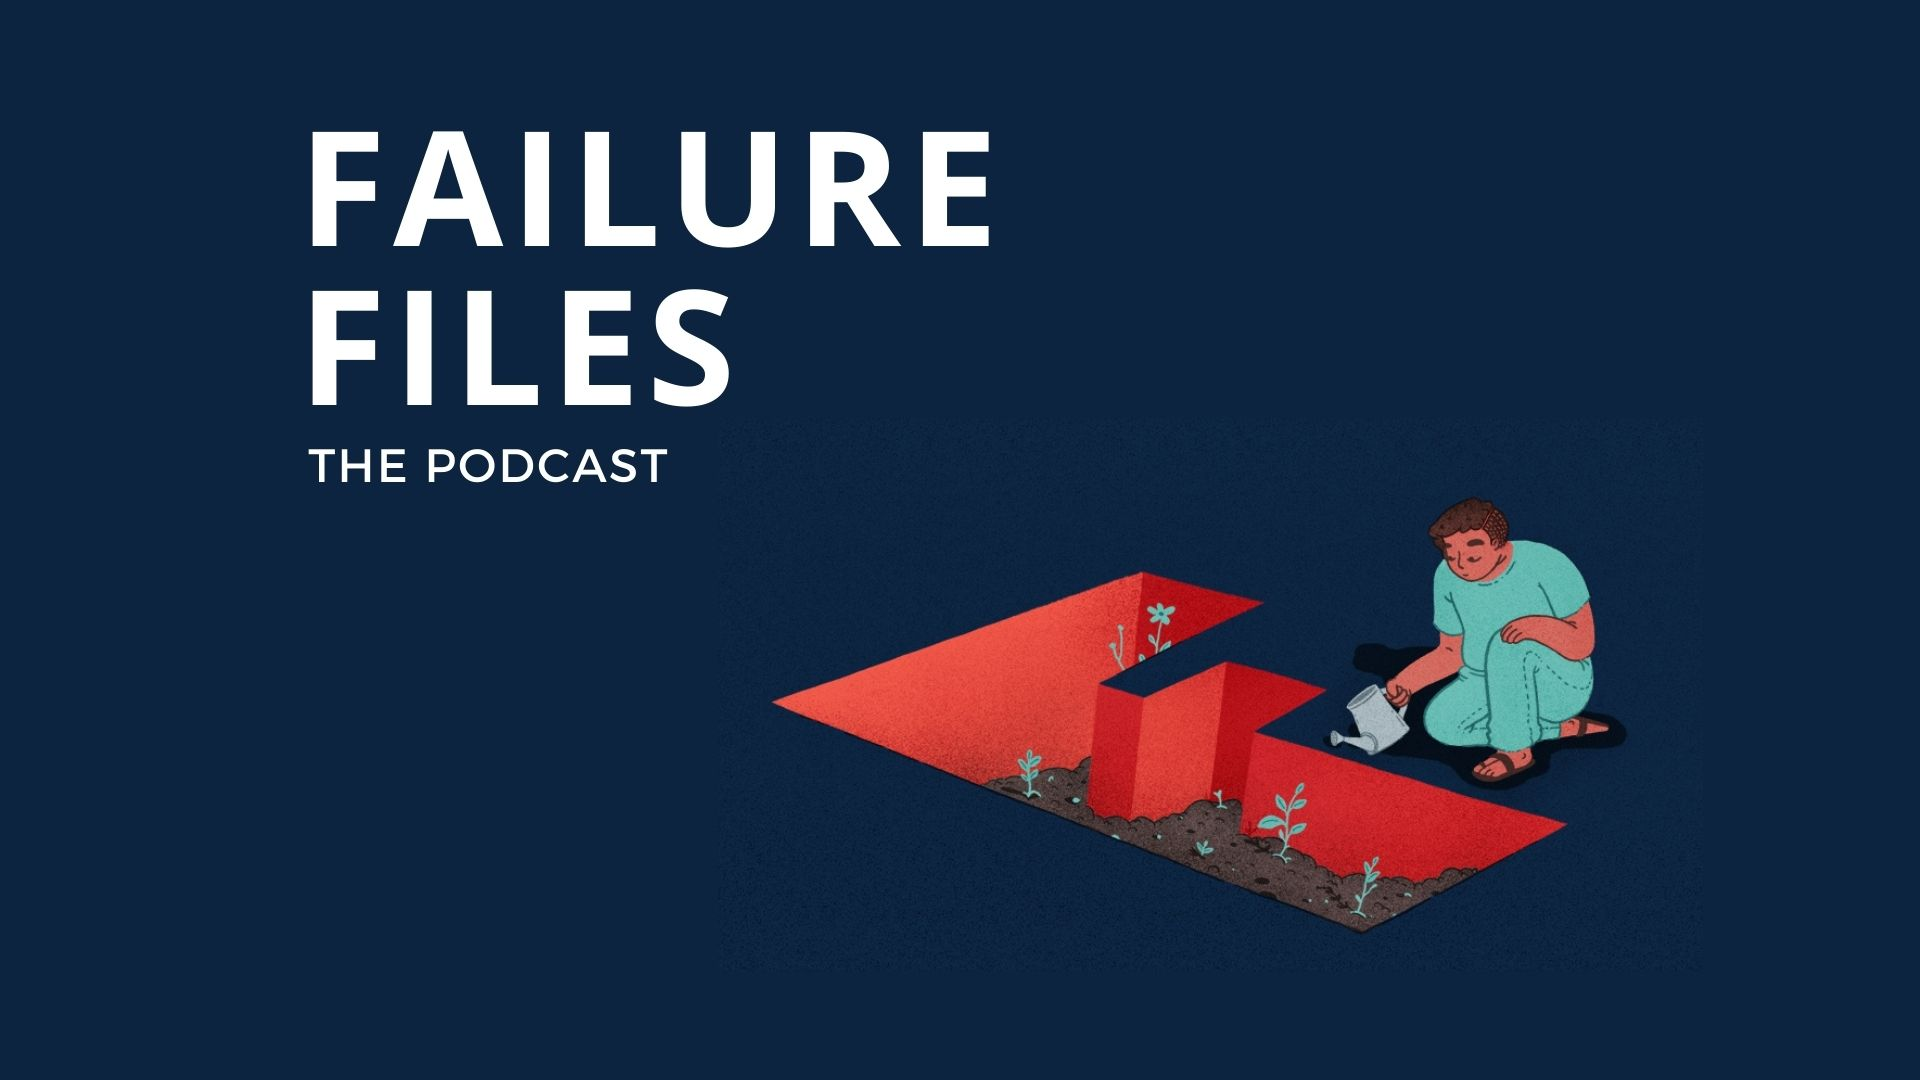 Failure Files podcast written on a dark blue background and an illustration of a person watering a bit F in the ground